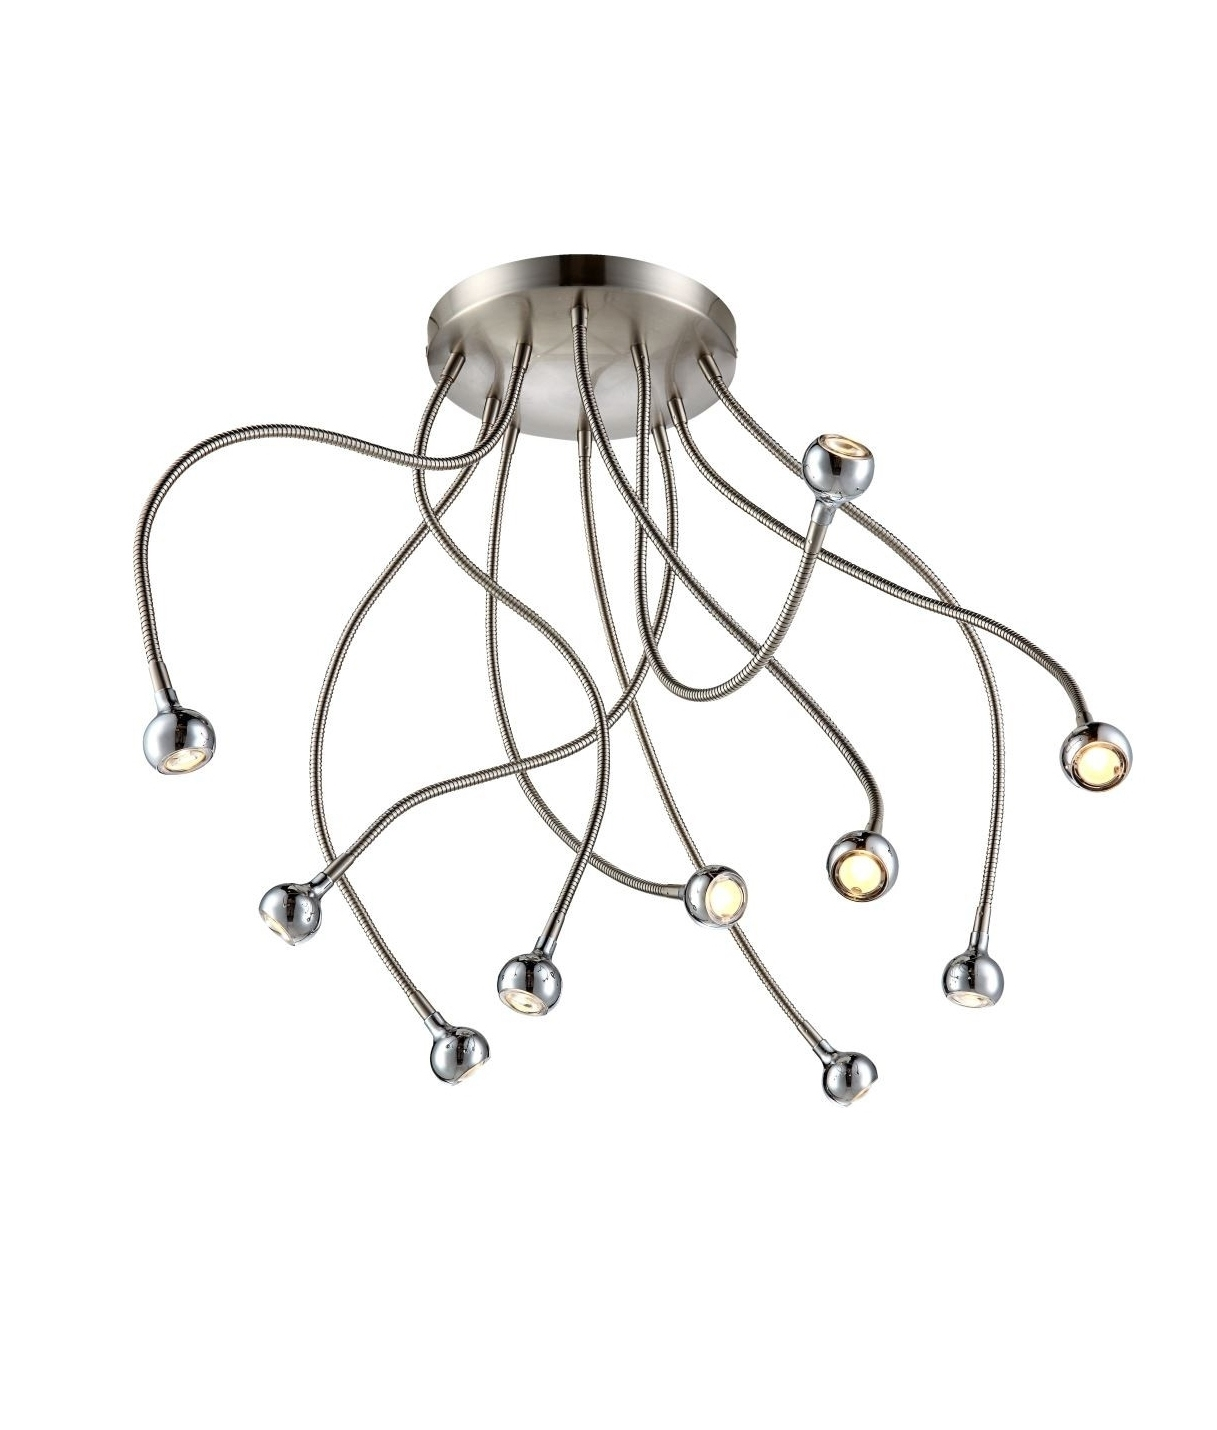 Ceiling Light With Flexible Alien Like Arms With 5 Or 10